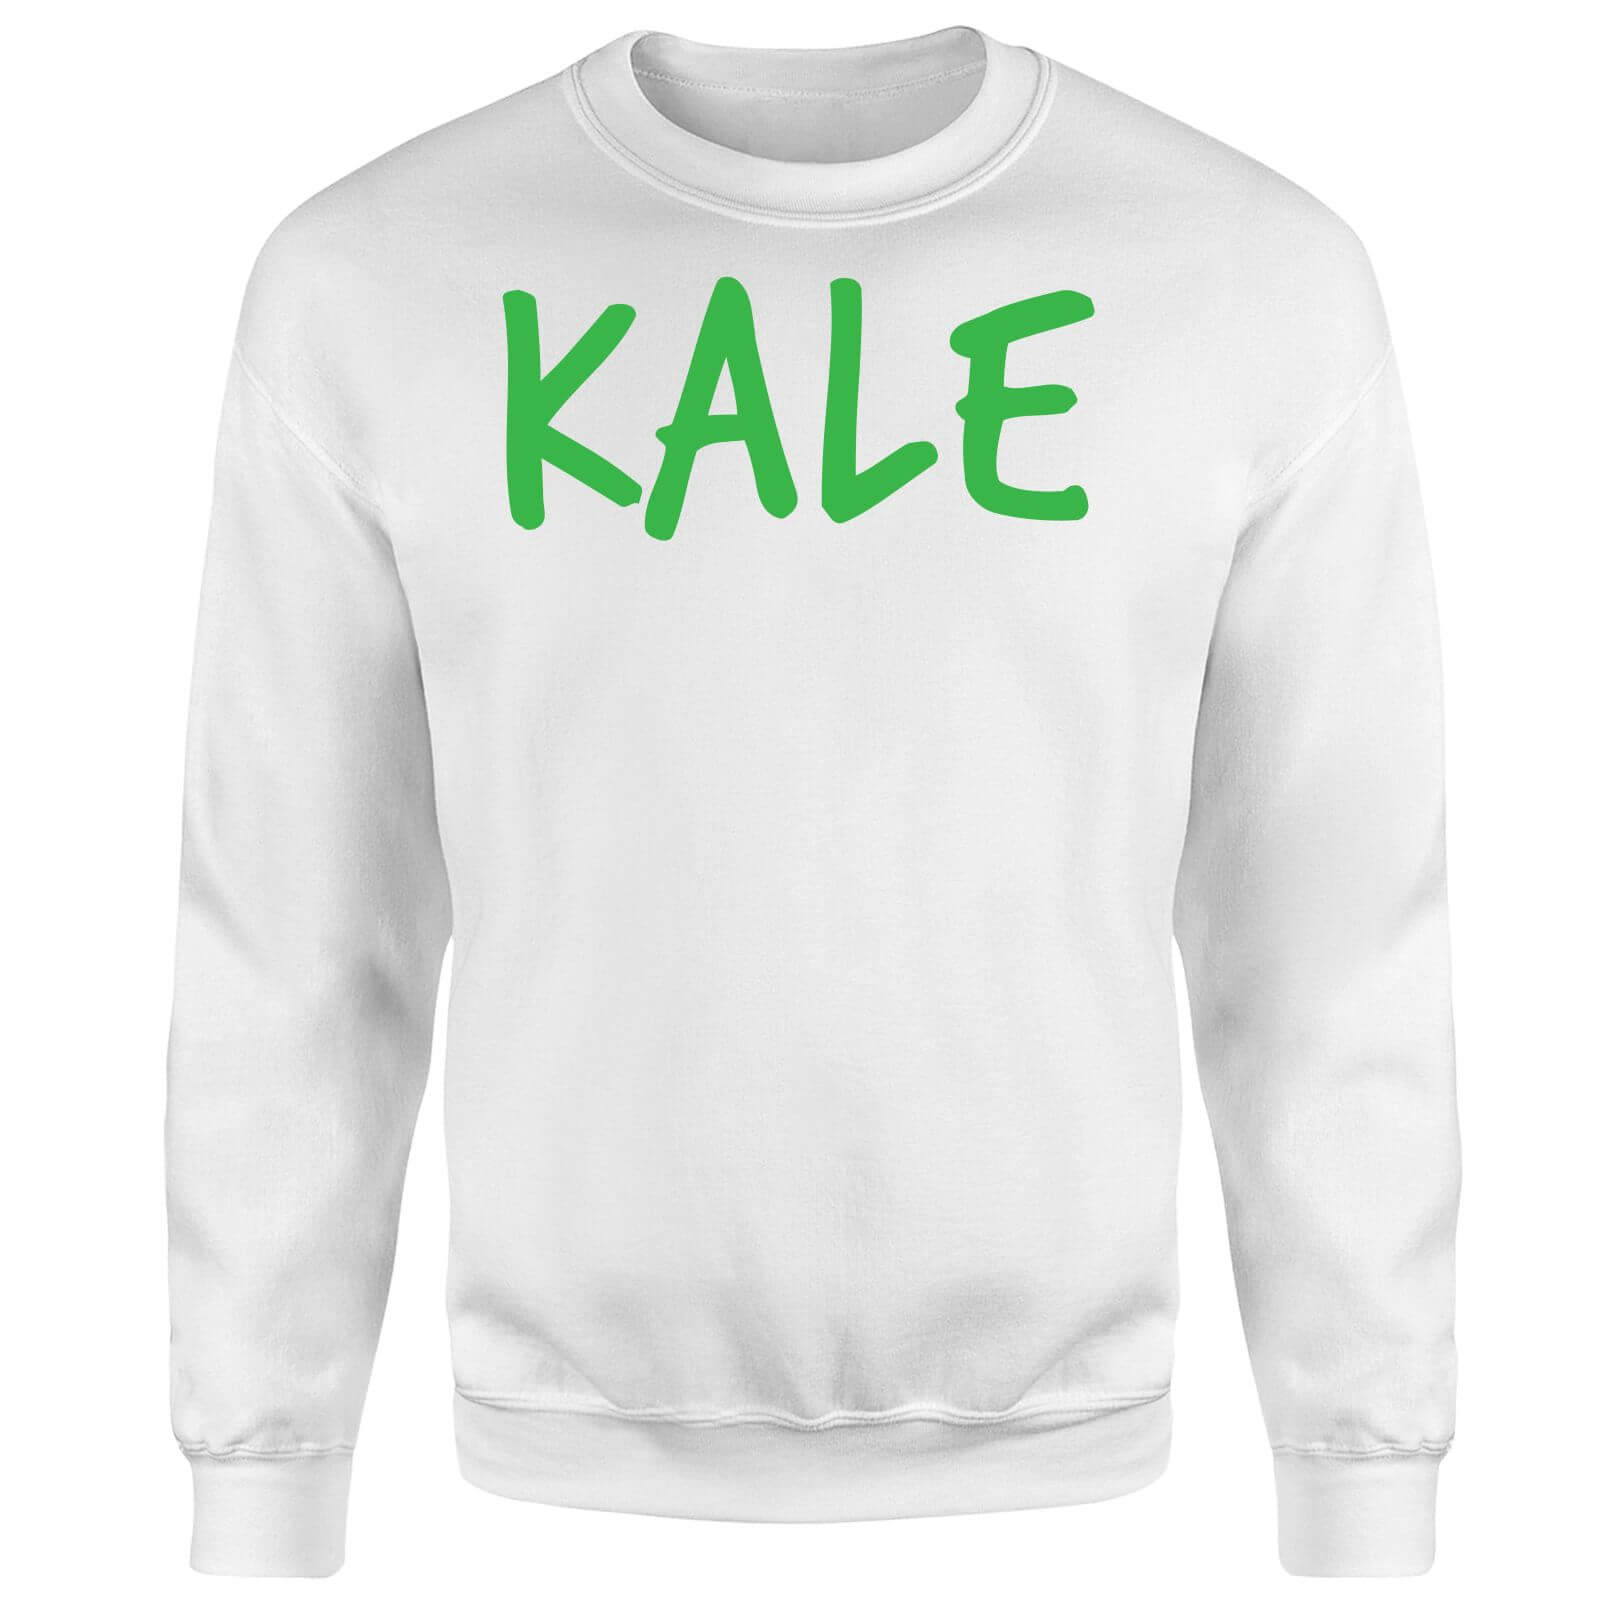 Kale Sweatshirt - White